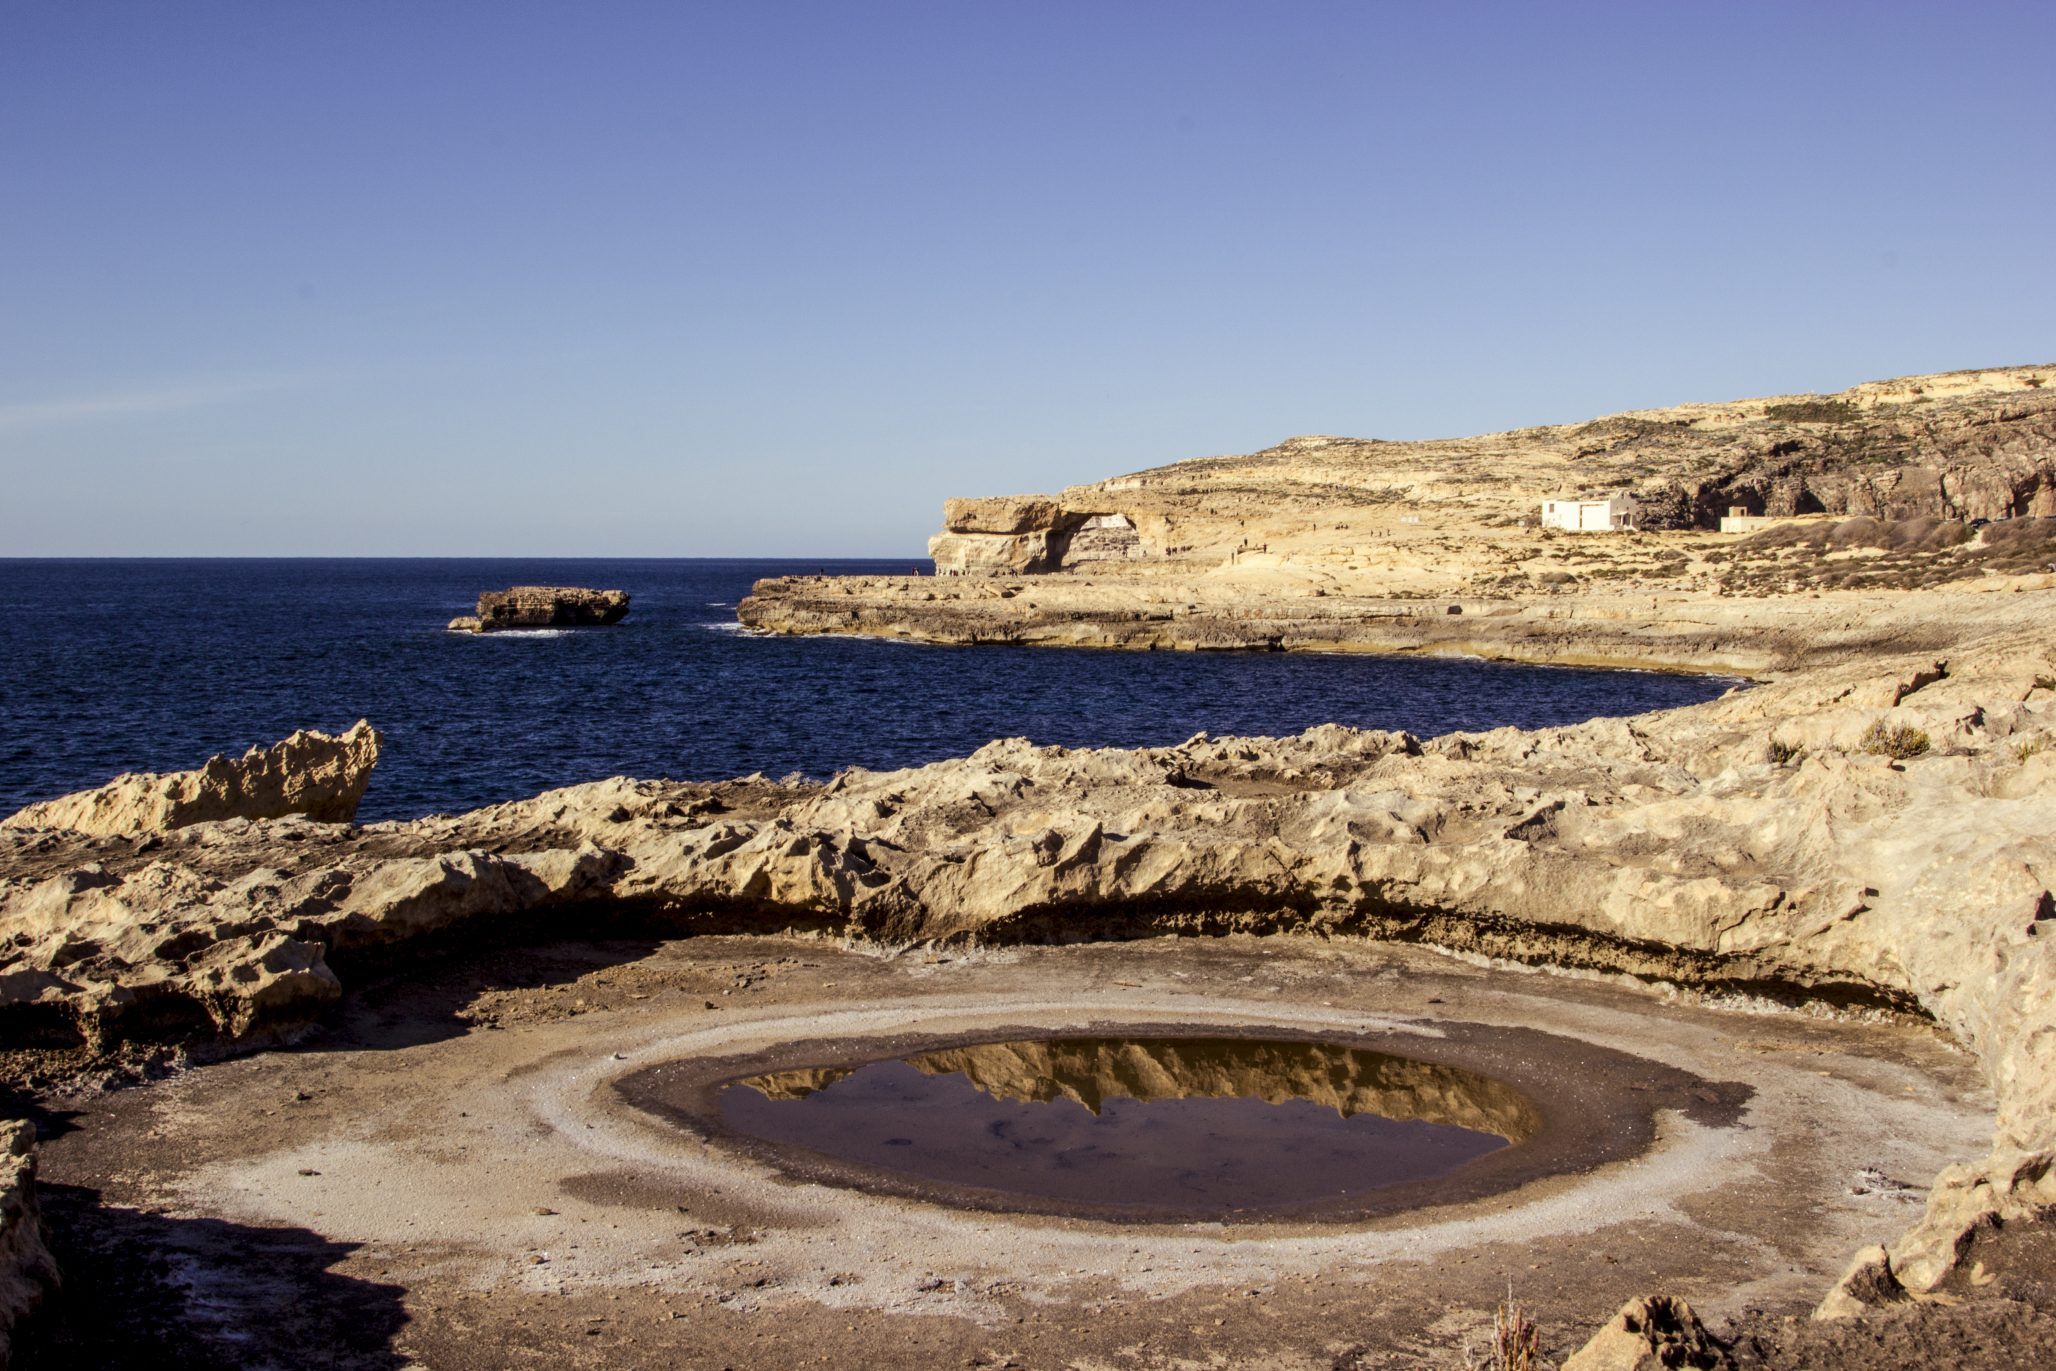 Dwerja with the azure window in the distance